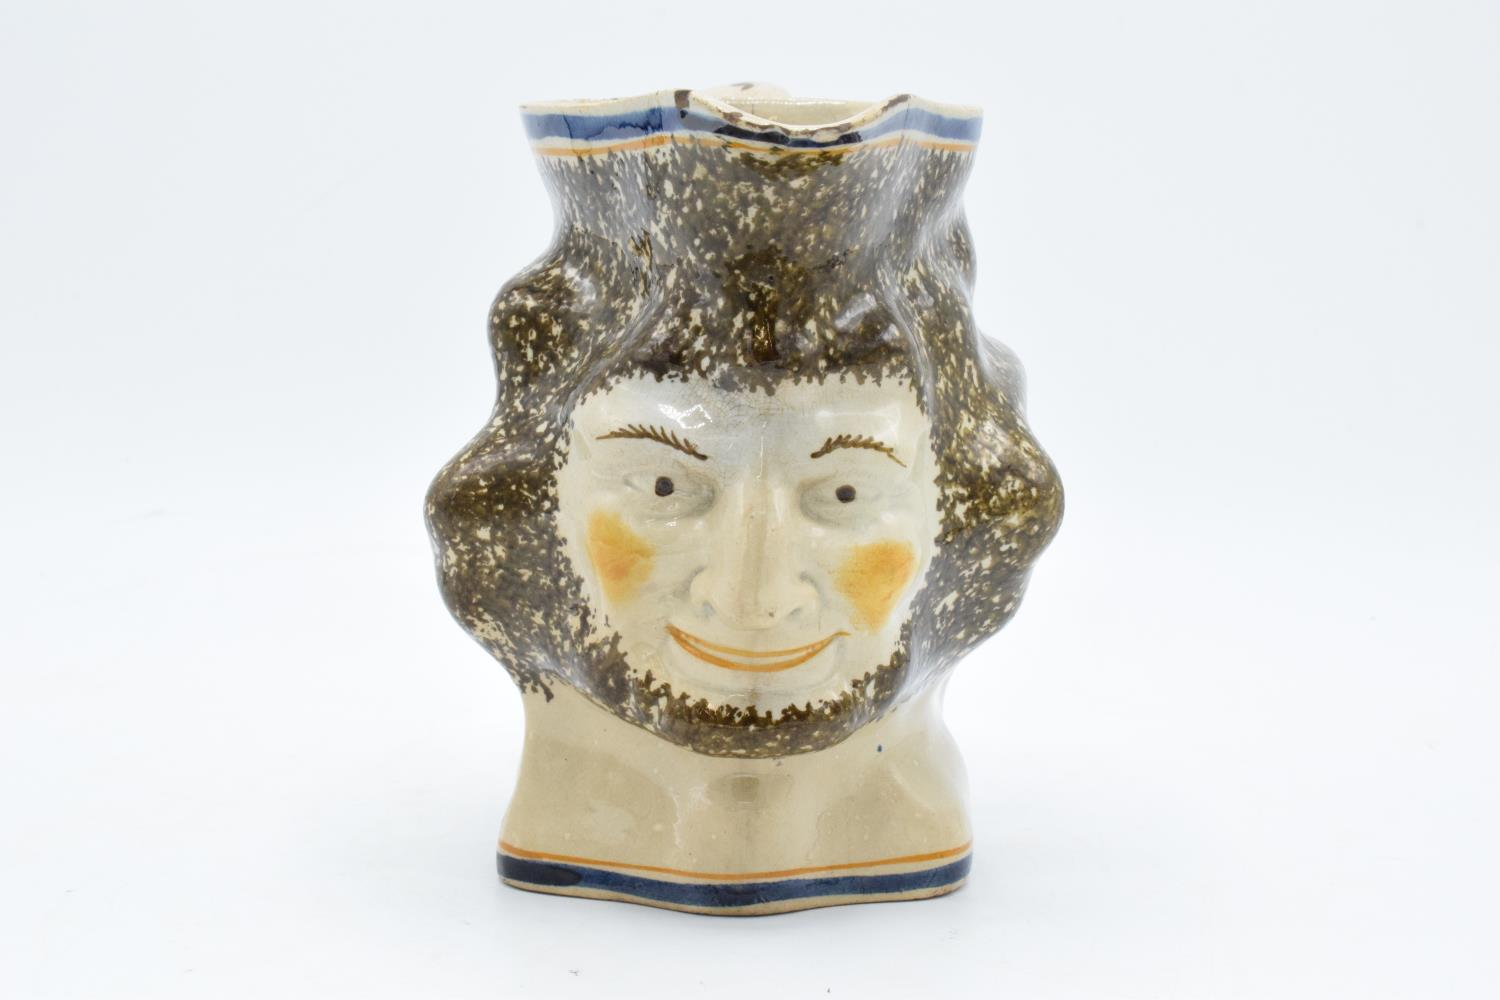 19th century Pratt Ware unusal face mask/ character jug. Generally in good condition for it's age